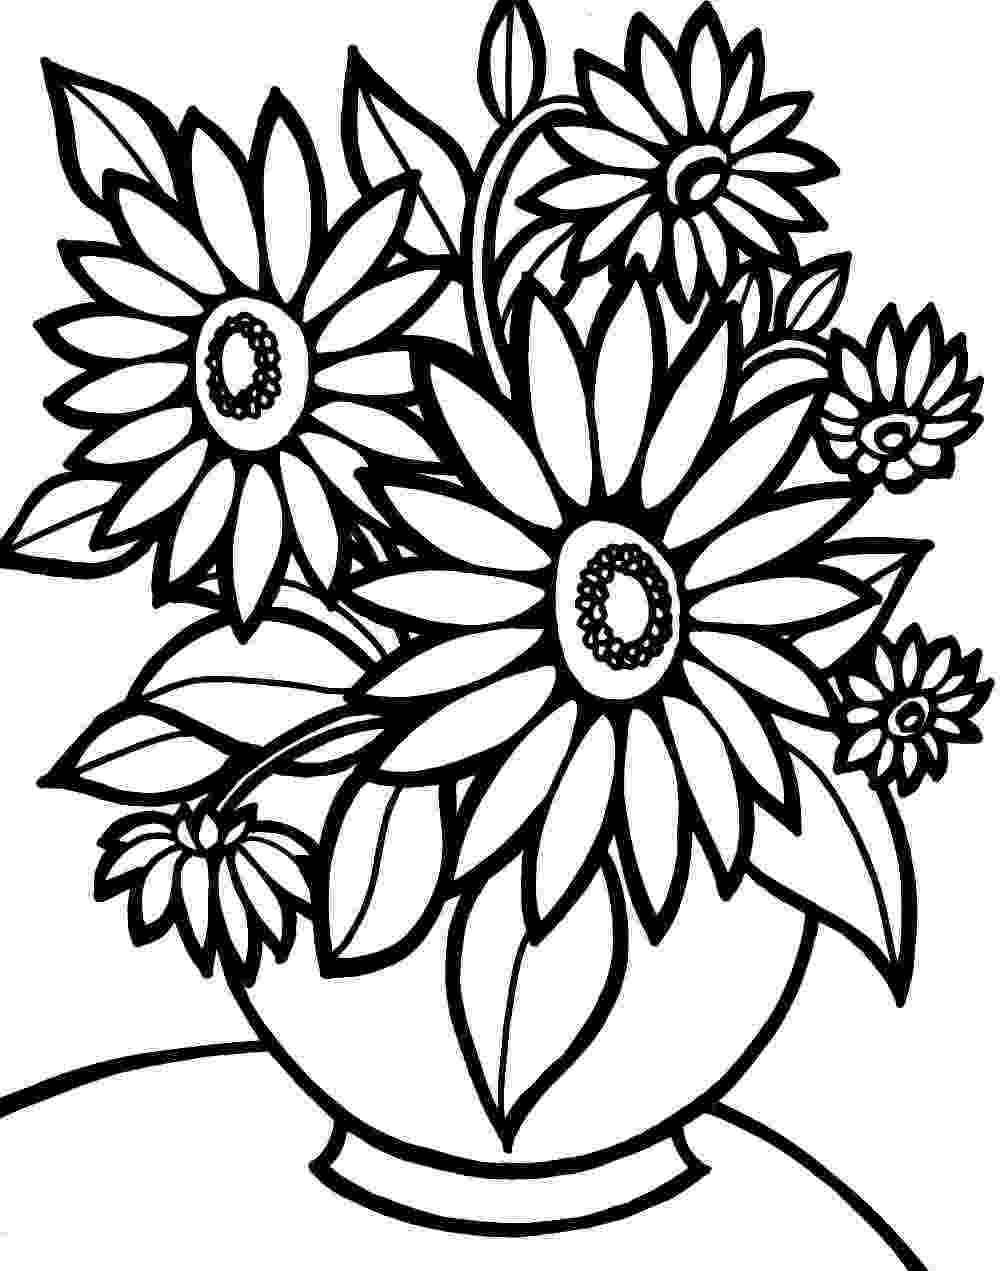 picture of flower for colouring flower coloring pages 1 coloring kids picture colouring for flower of